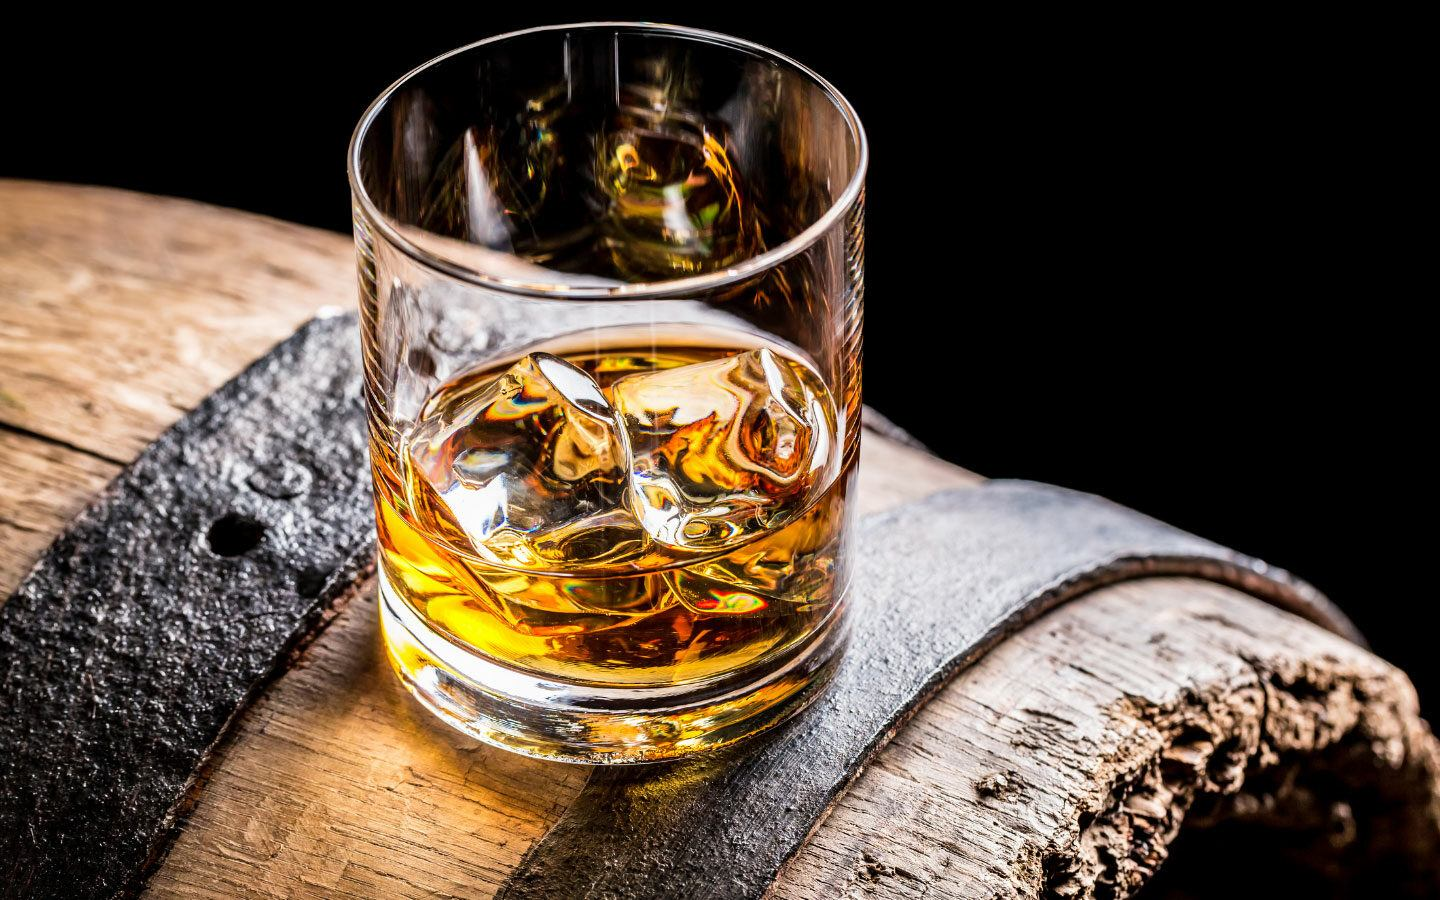 Glass of whisky on a barrel at a whisky tasting in Scotland